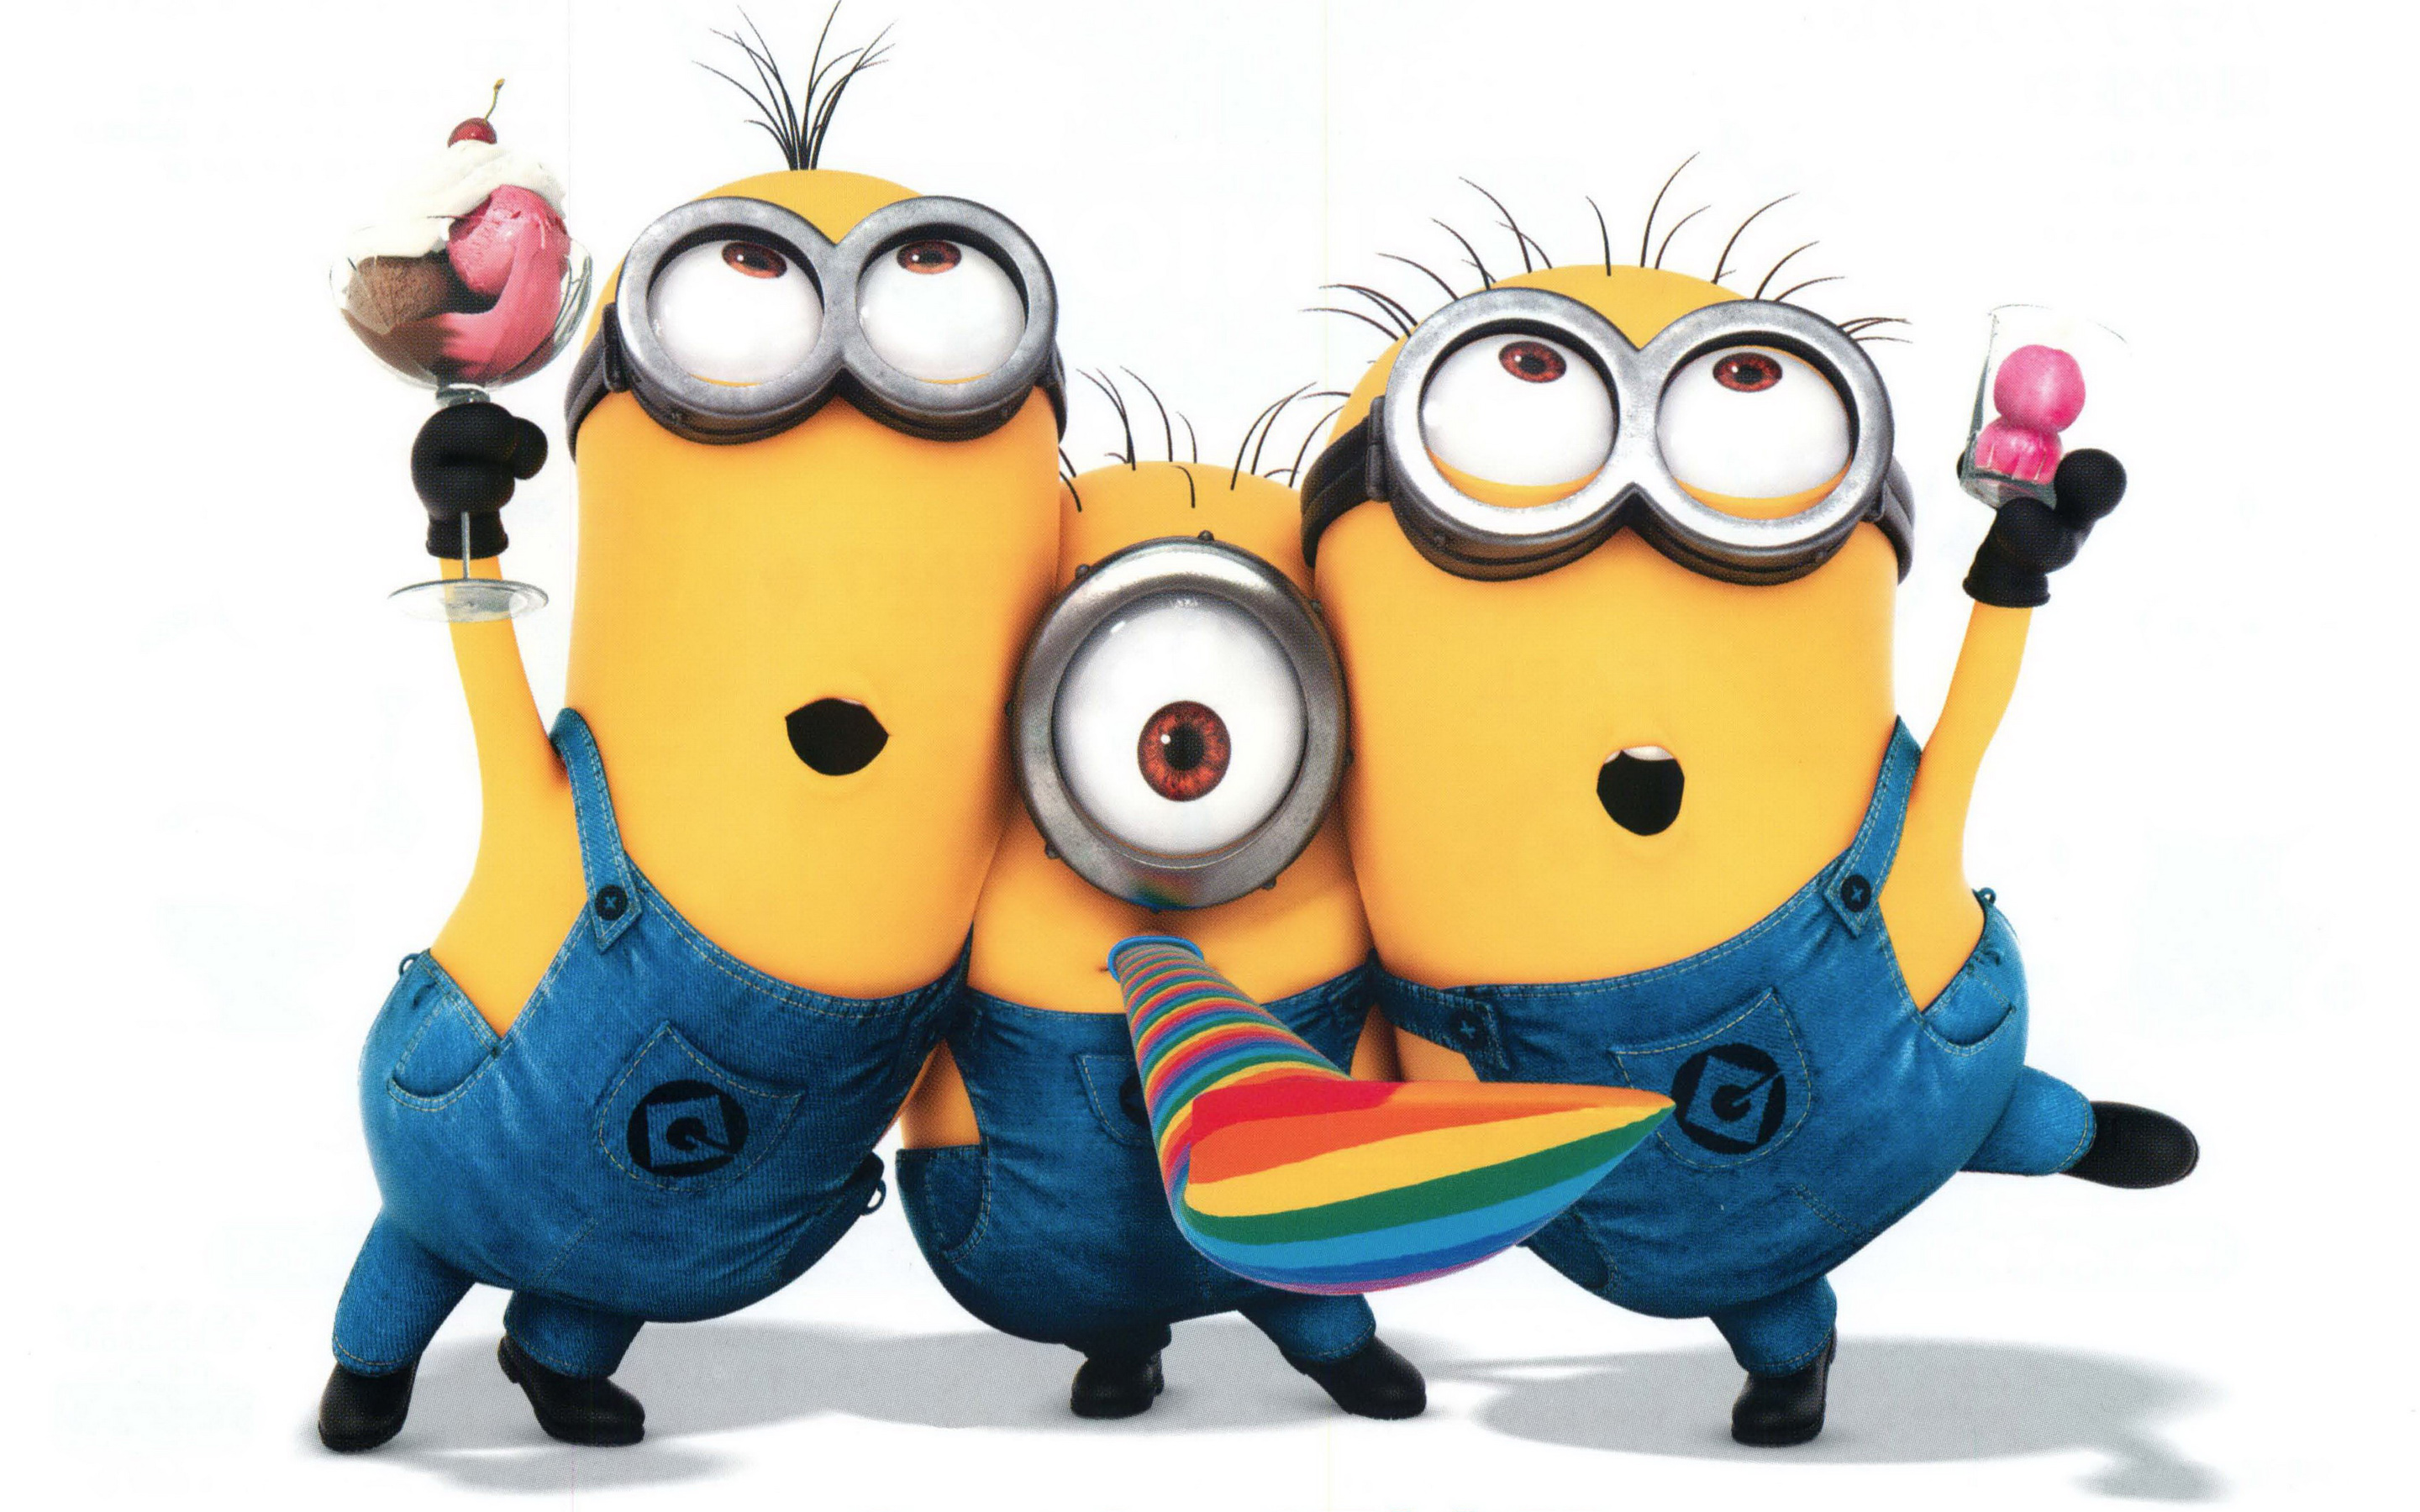 minions wallpaper Despicable Me 2 Minions Pictures, Movie Wallpapers